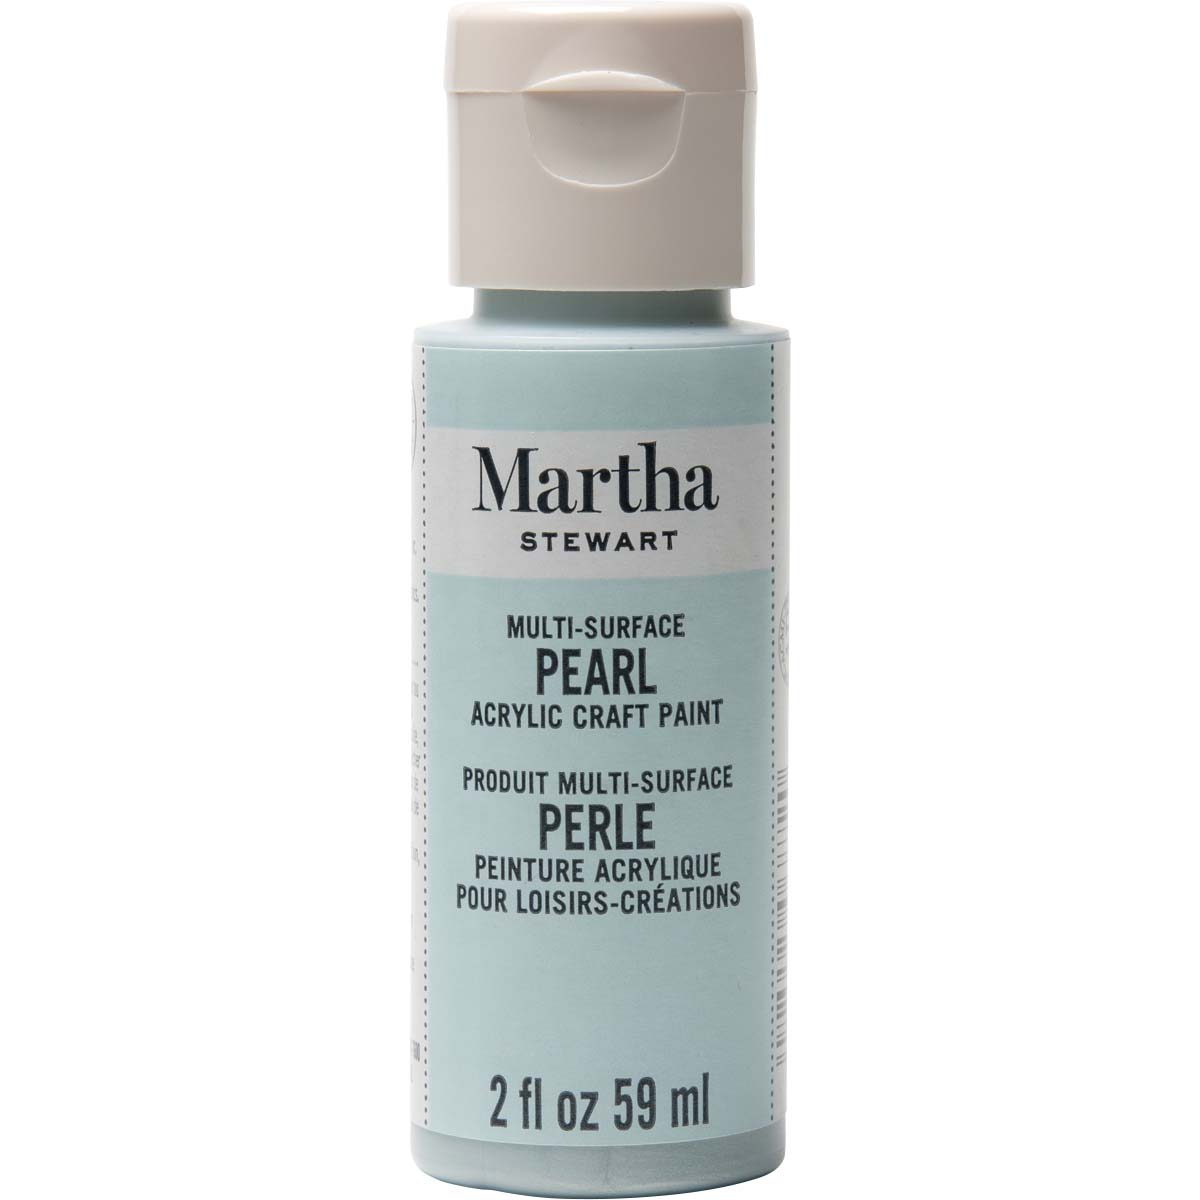 Martha Stewart ® Multi-Surface Pearl Acrylic Craft Paint - Jet Stream, 2 oz. - 32121CA